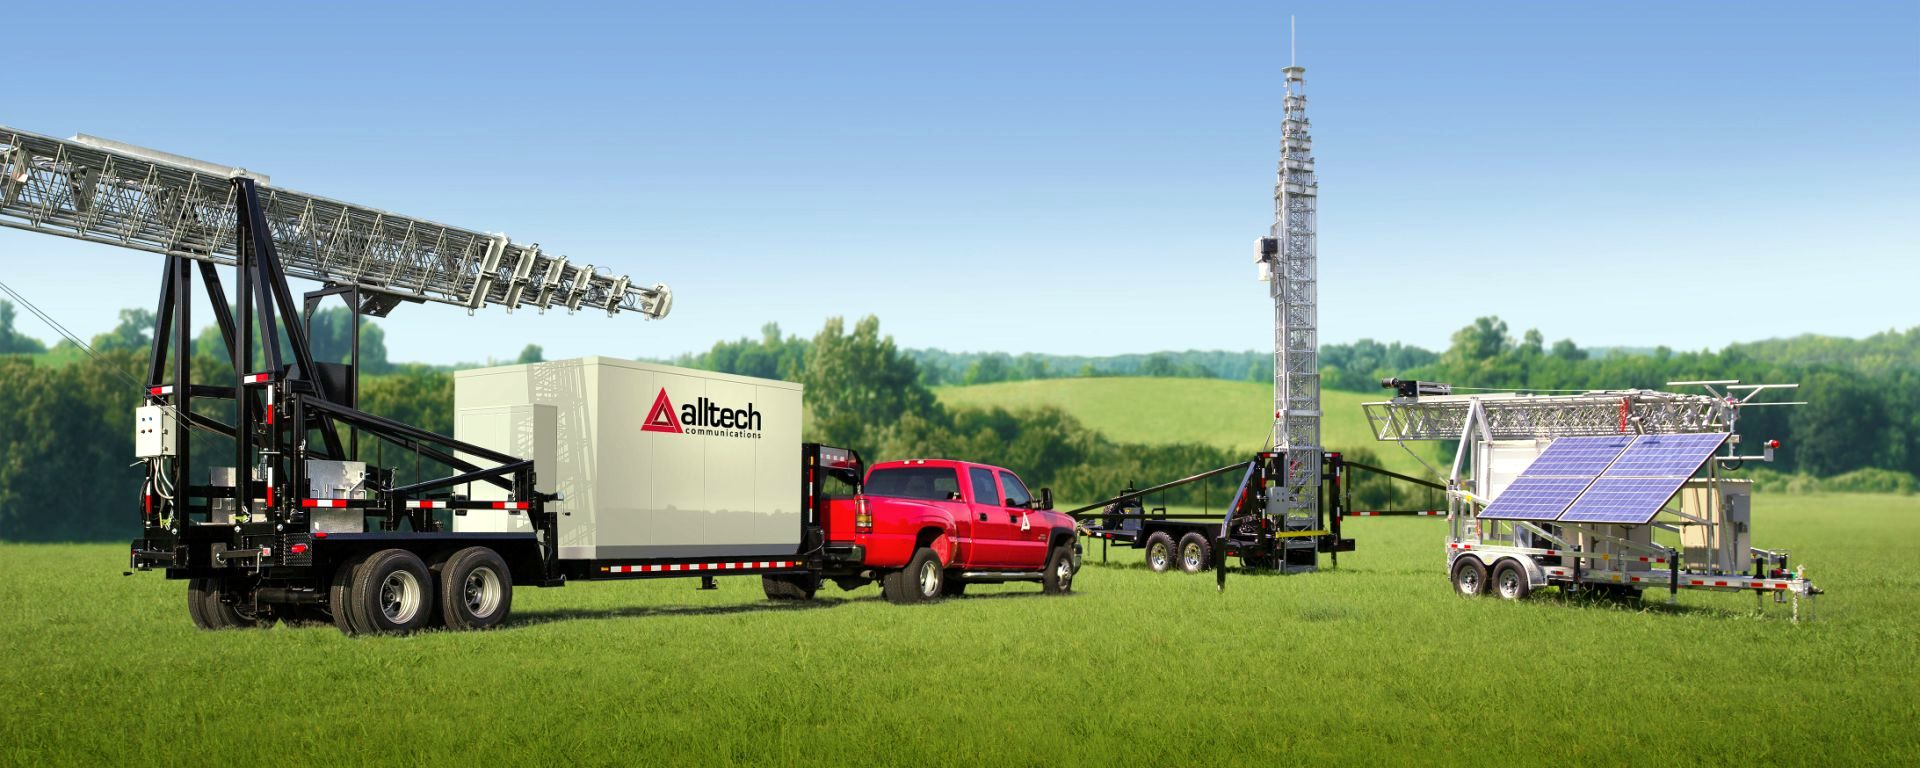 1920×768 AllTech Communications Cell on Wheels, Telescopic Tower, Trailer & Telecom Shelter Manufacturing Company Slider- (7)